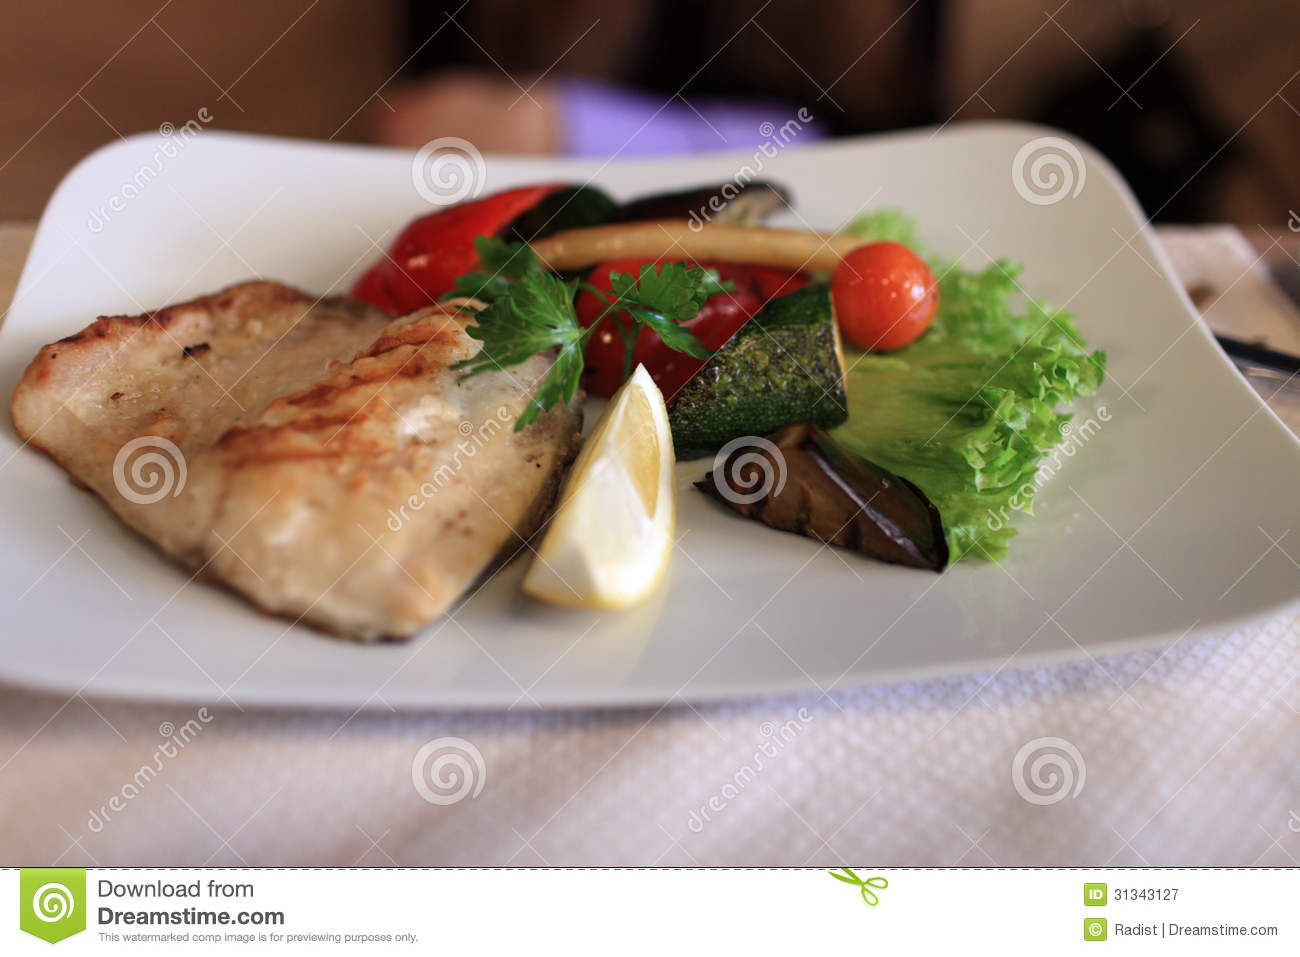 Grilled fish with vegetables royalty free stock for What vegetables go with fish